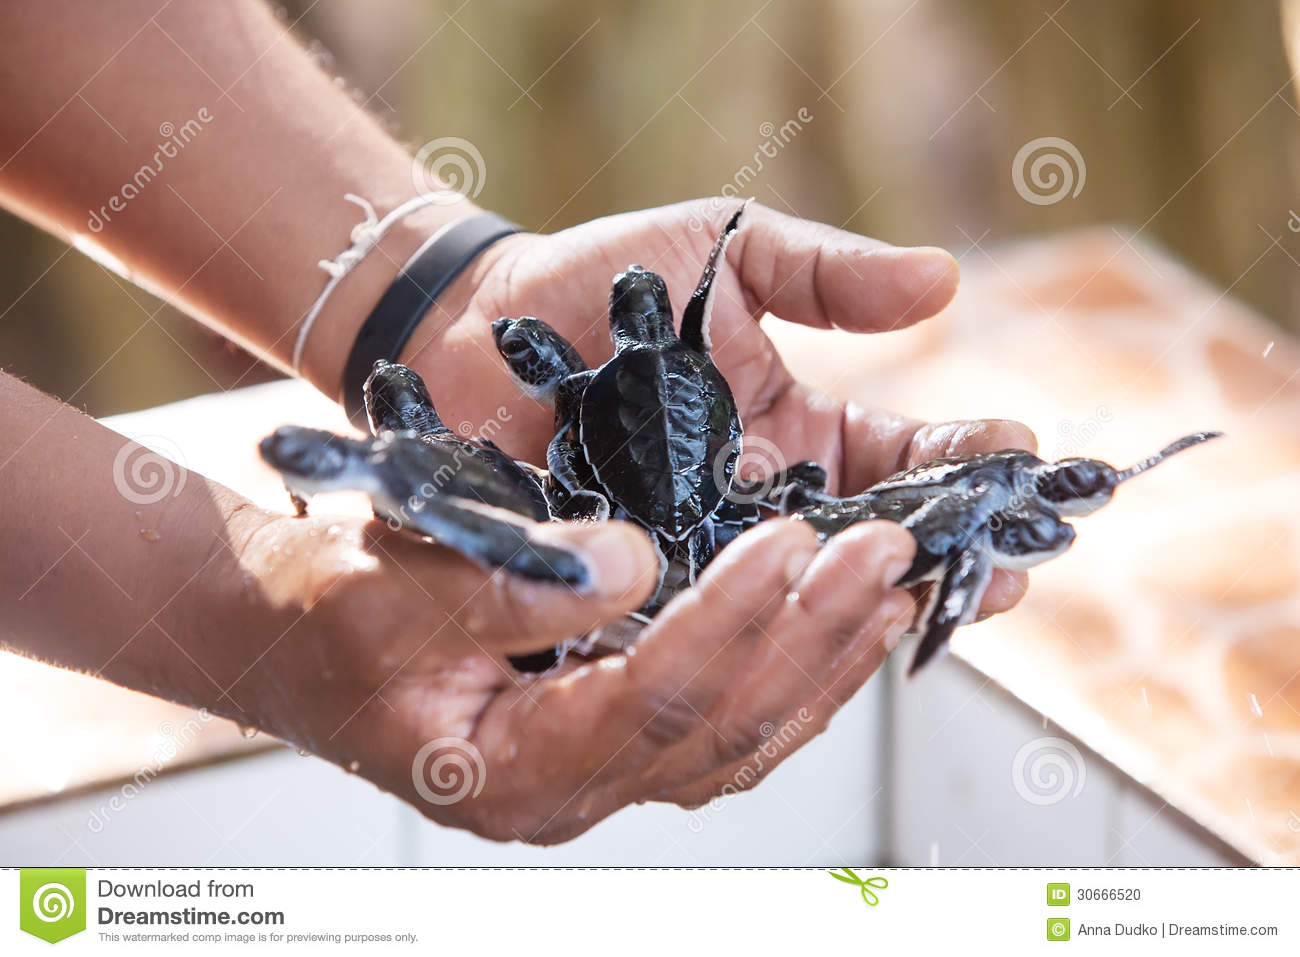 Download Newly Hatched Babies Turtle Stock Photo - Image of macro, baby: 30666520